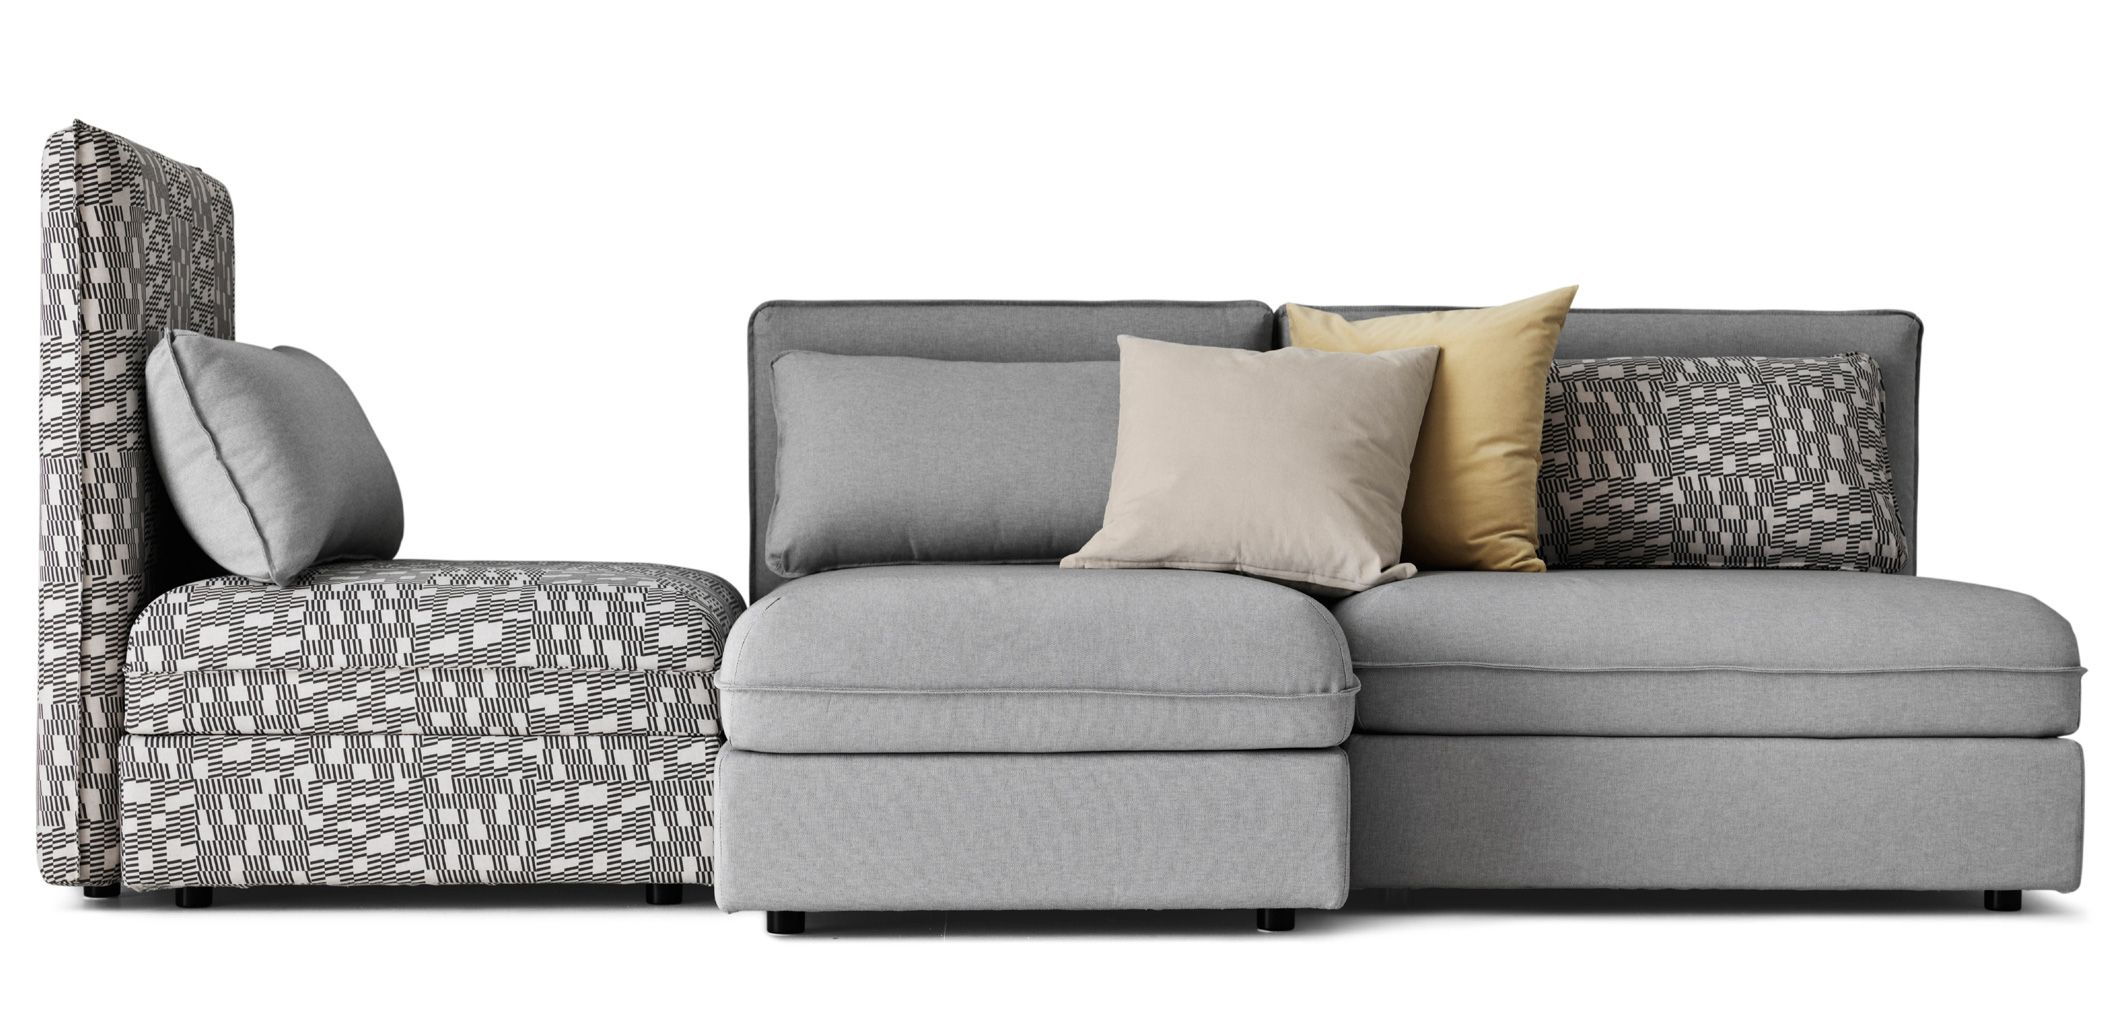 Colorful Inexpensive Modular Sofa , Lovely Inexpensive ...